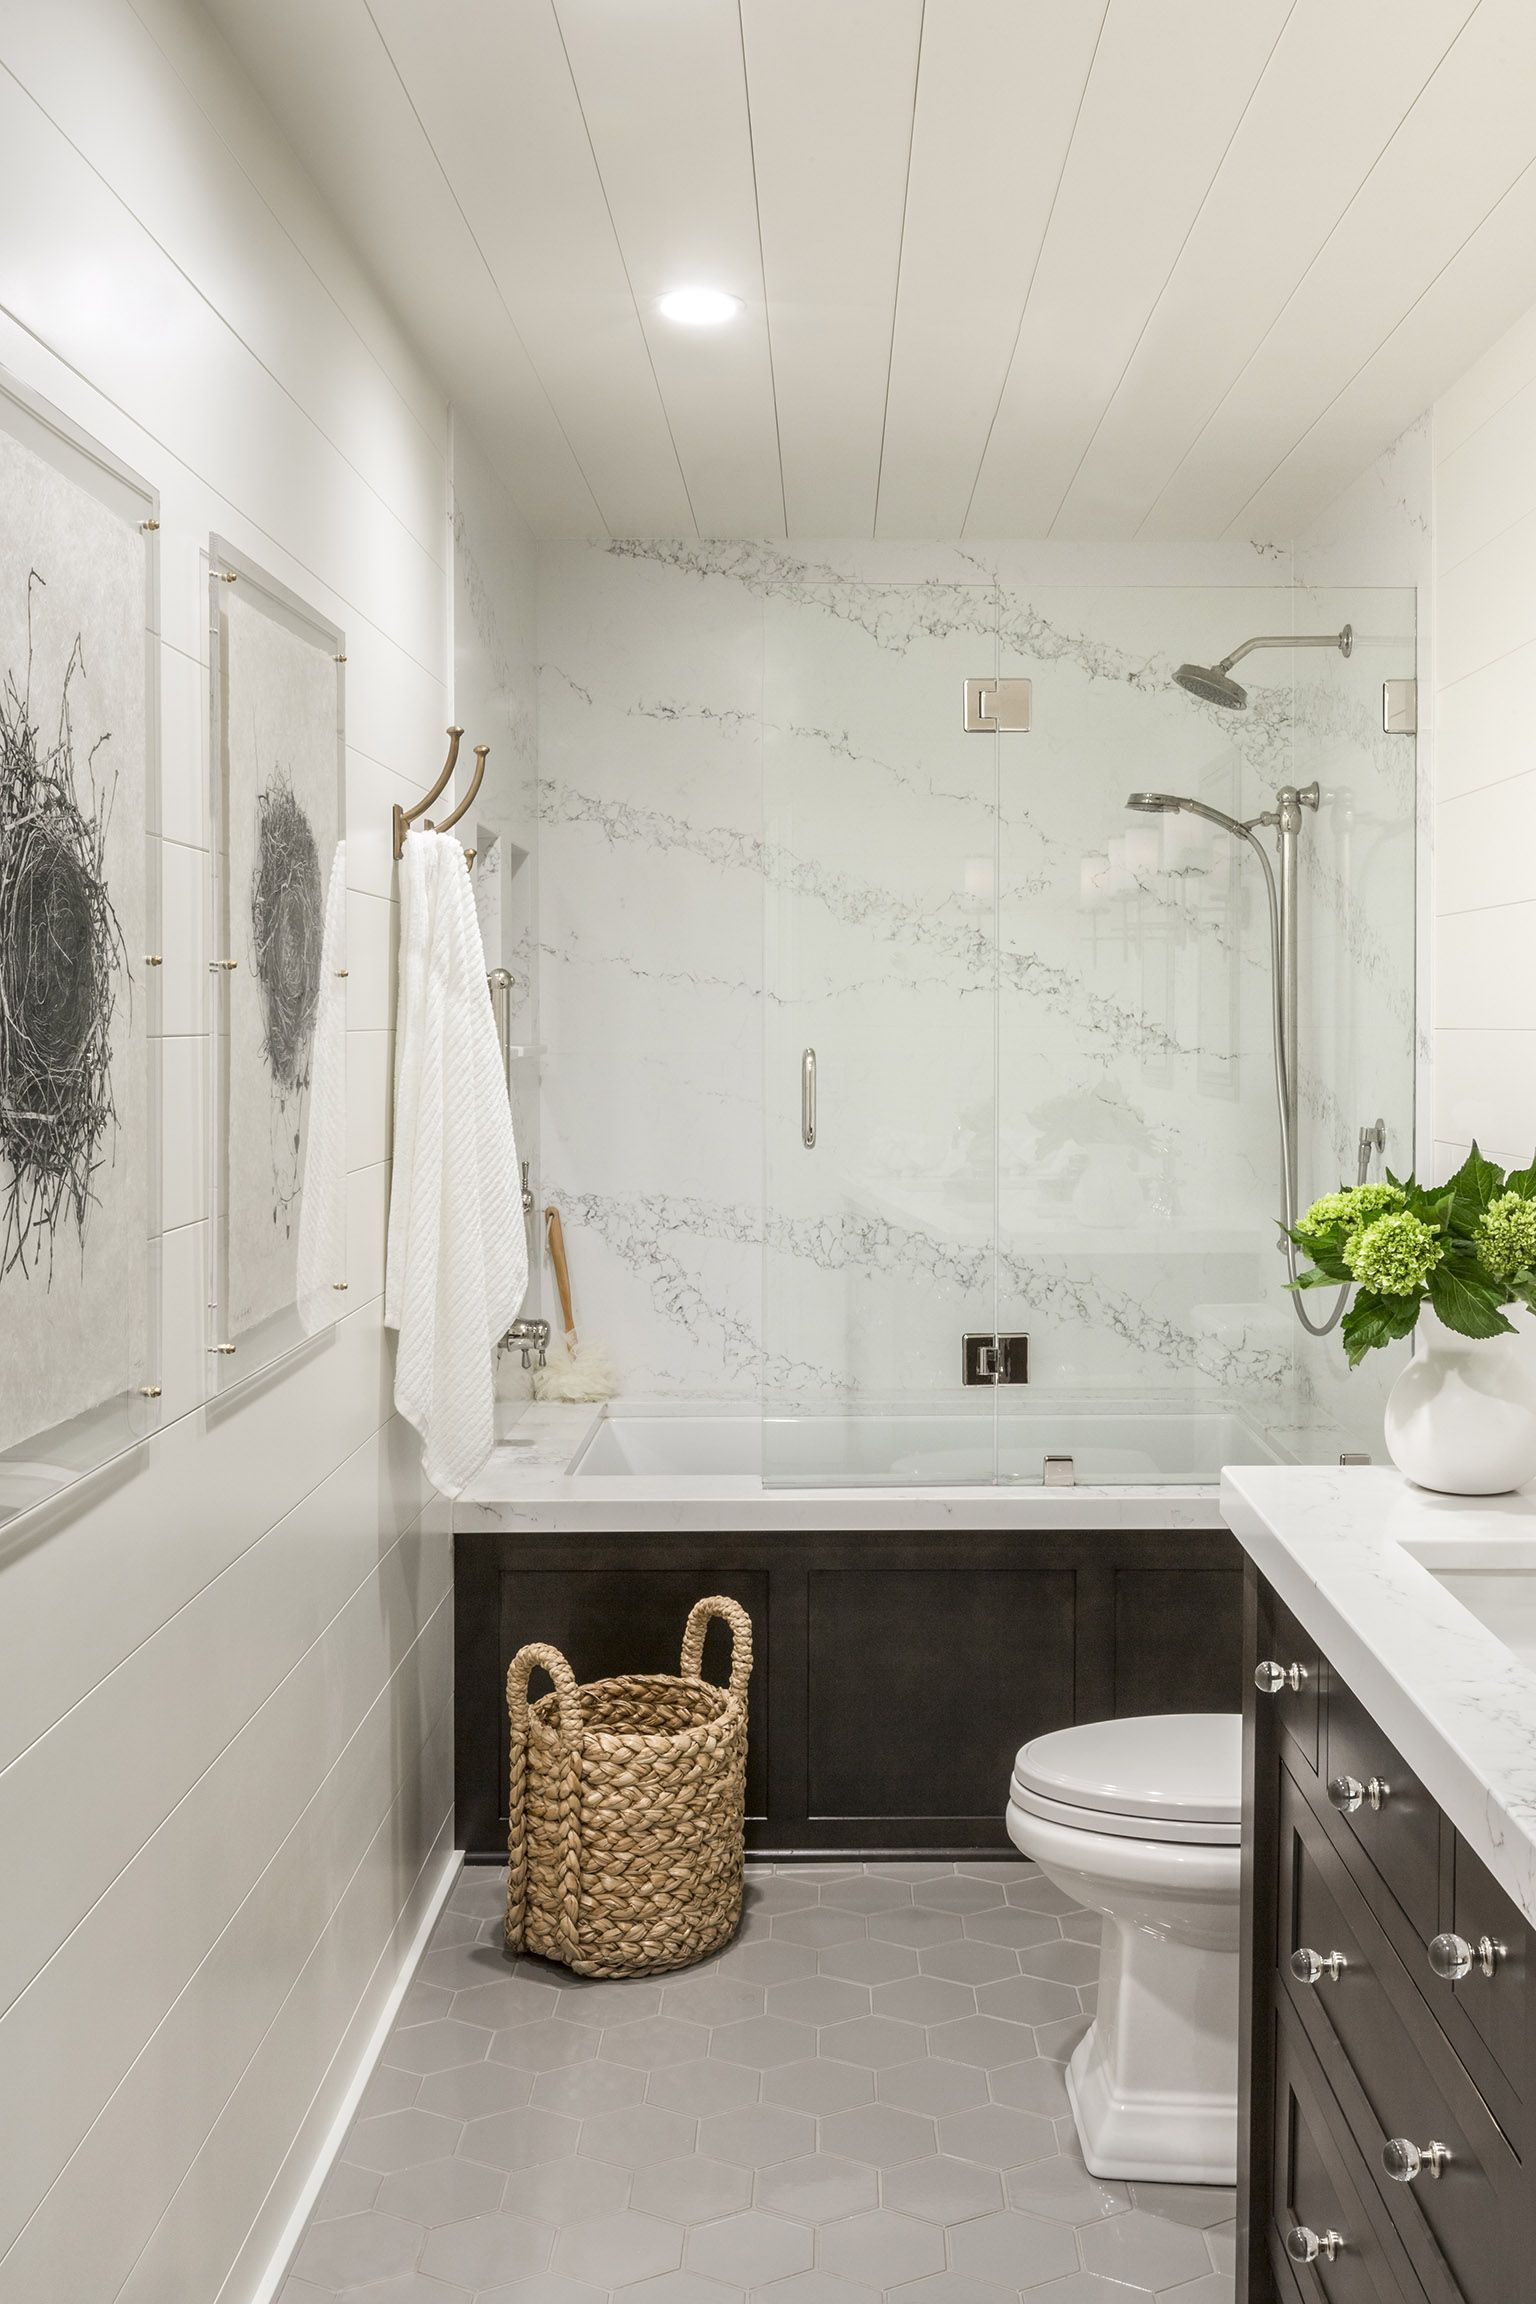 9 Secret Advice To Make An Outstanding Home Bathroom Remodel | Hall ...